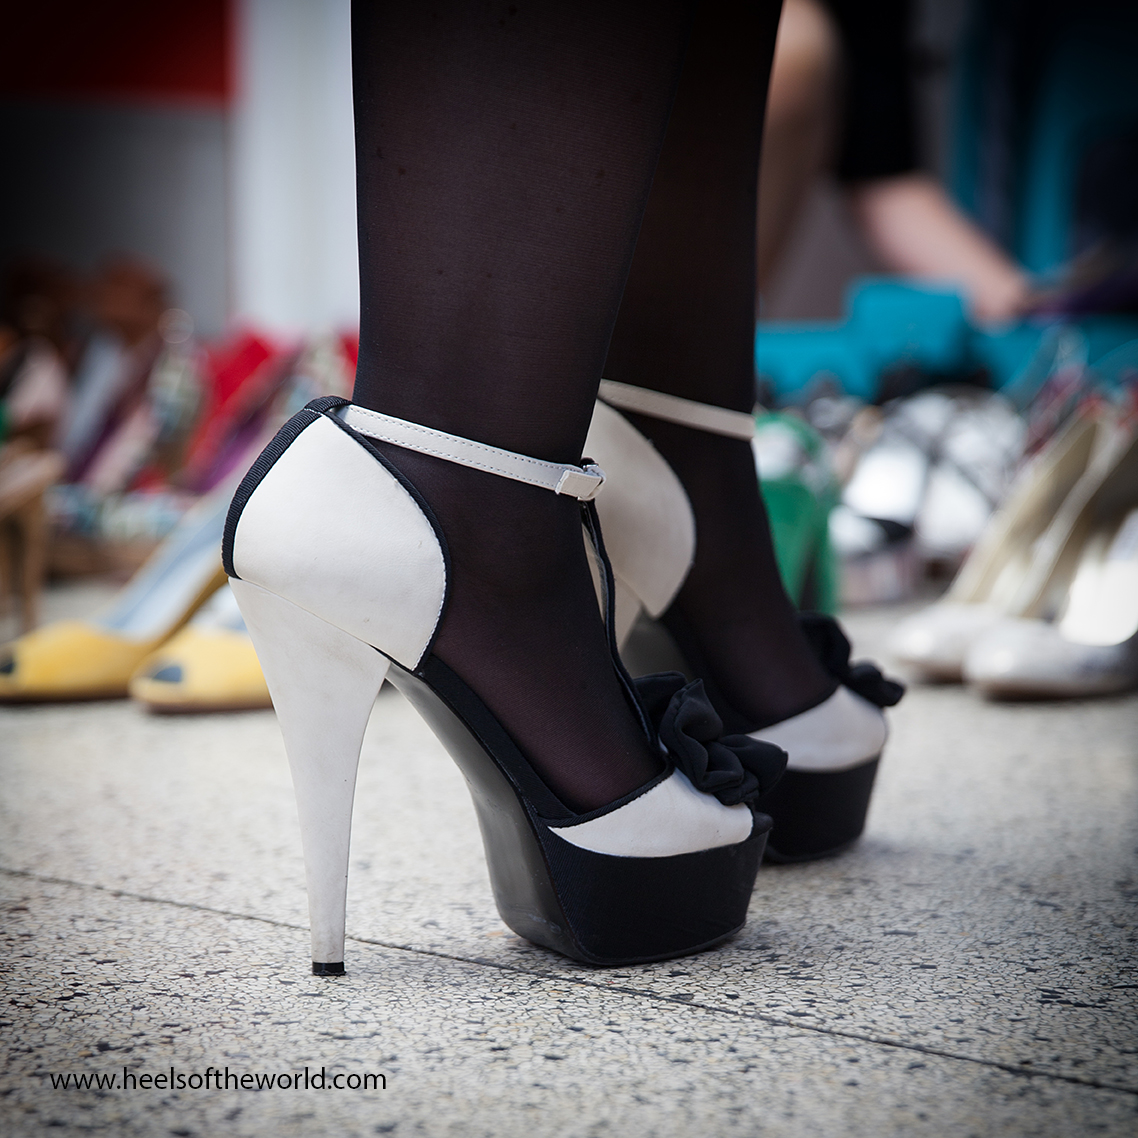 Serie about women with a passion for highheels at HeelsoftheWorld a project by photographer Etienne Oldeman. Heels all over the world.